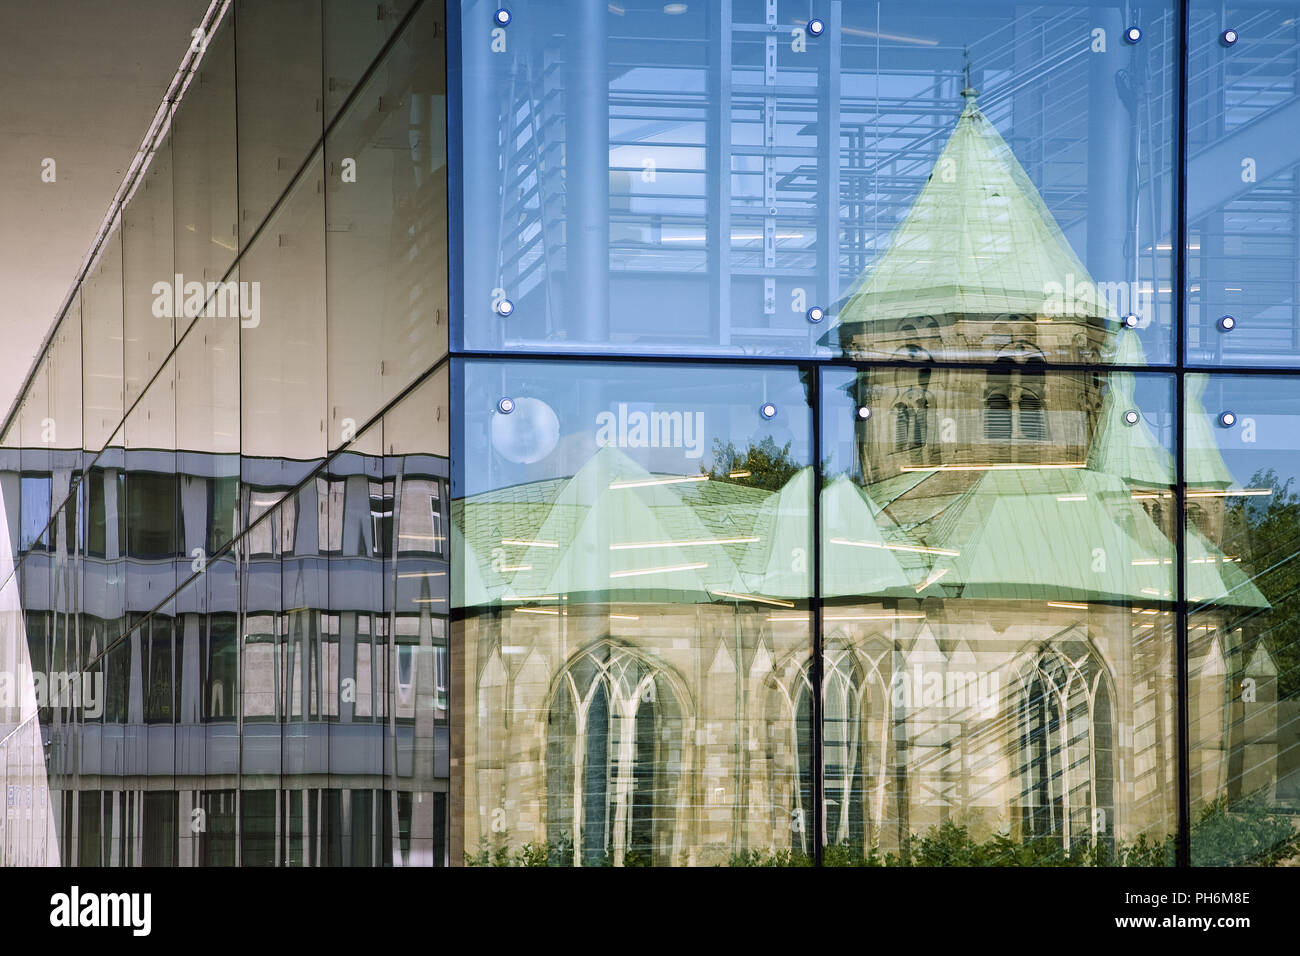 The dome ise refelcted in glass, Essen, Germany - Stock Image